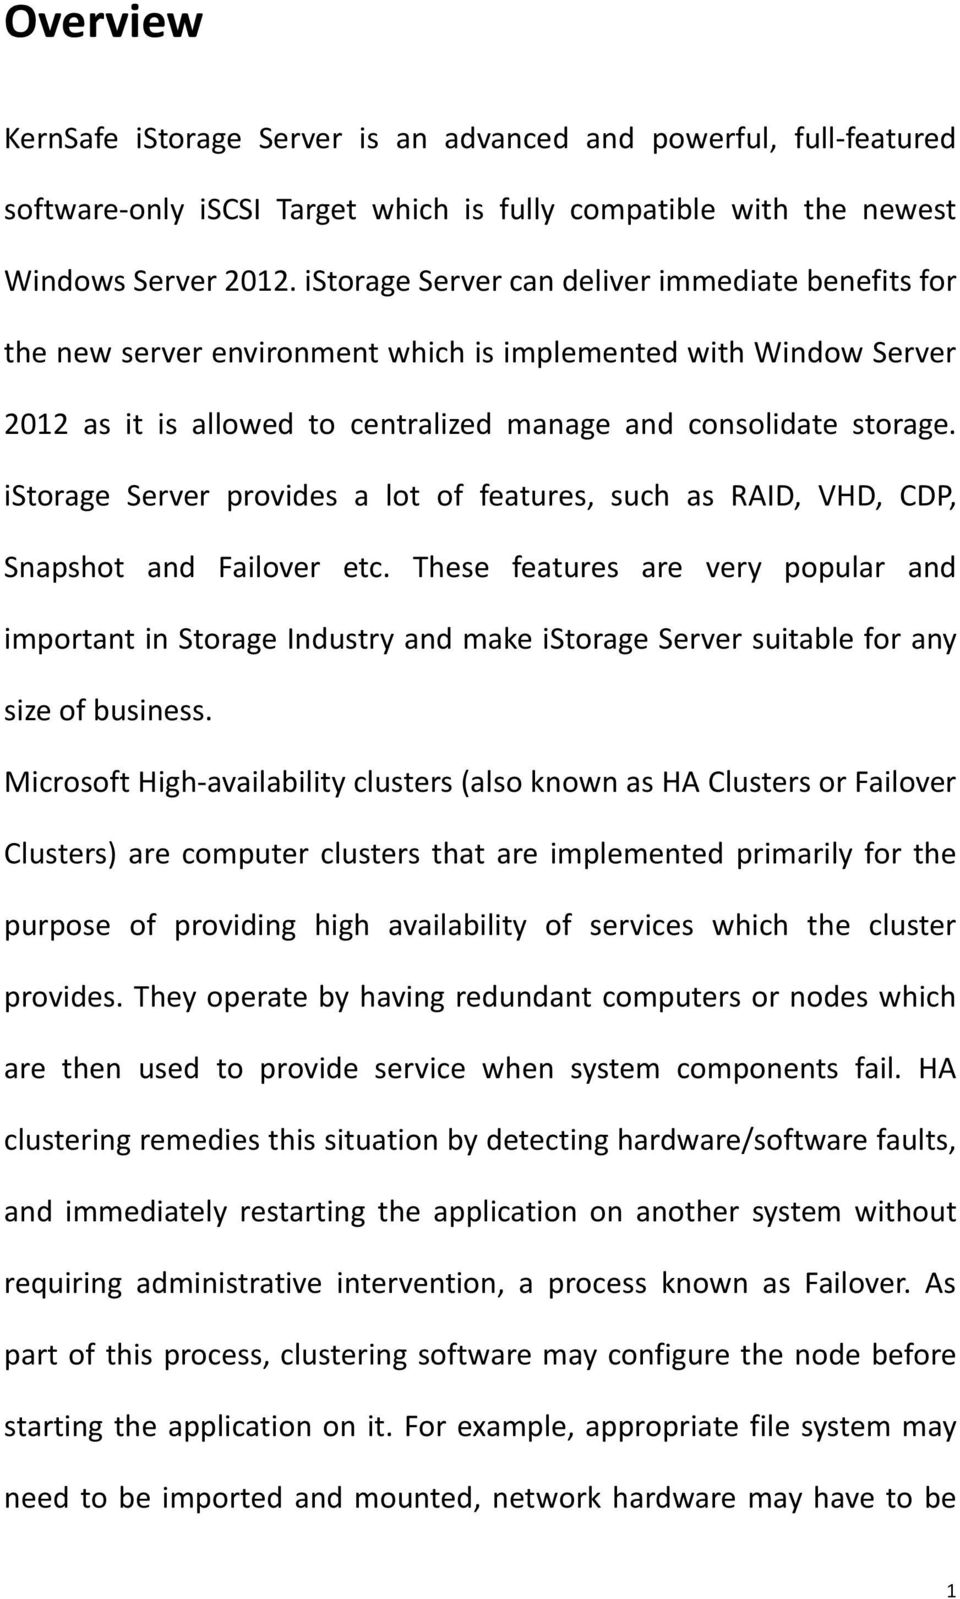 istorage Server provides a lot of features, such as RAID, VHD, CDP, Snapshot and Failover etc.